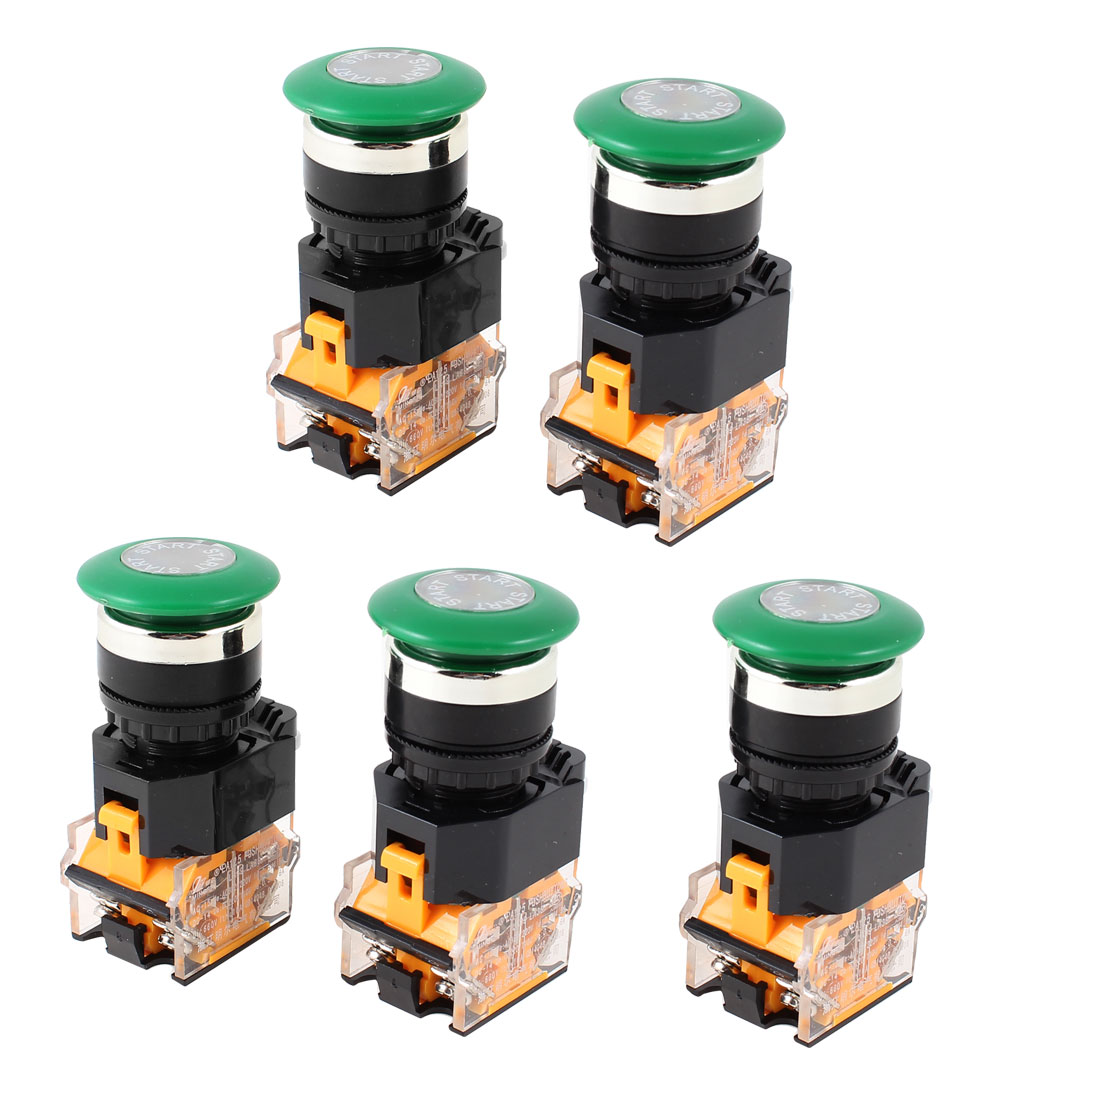 AC 660V 10A DPST Green Mushroom Cap 4 Screw Terminal Emergency Stop Switch 5Pcs